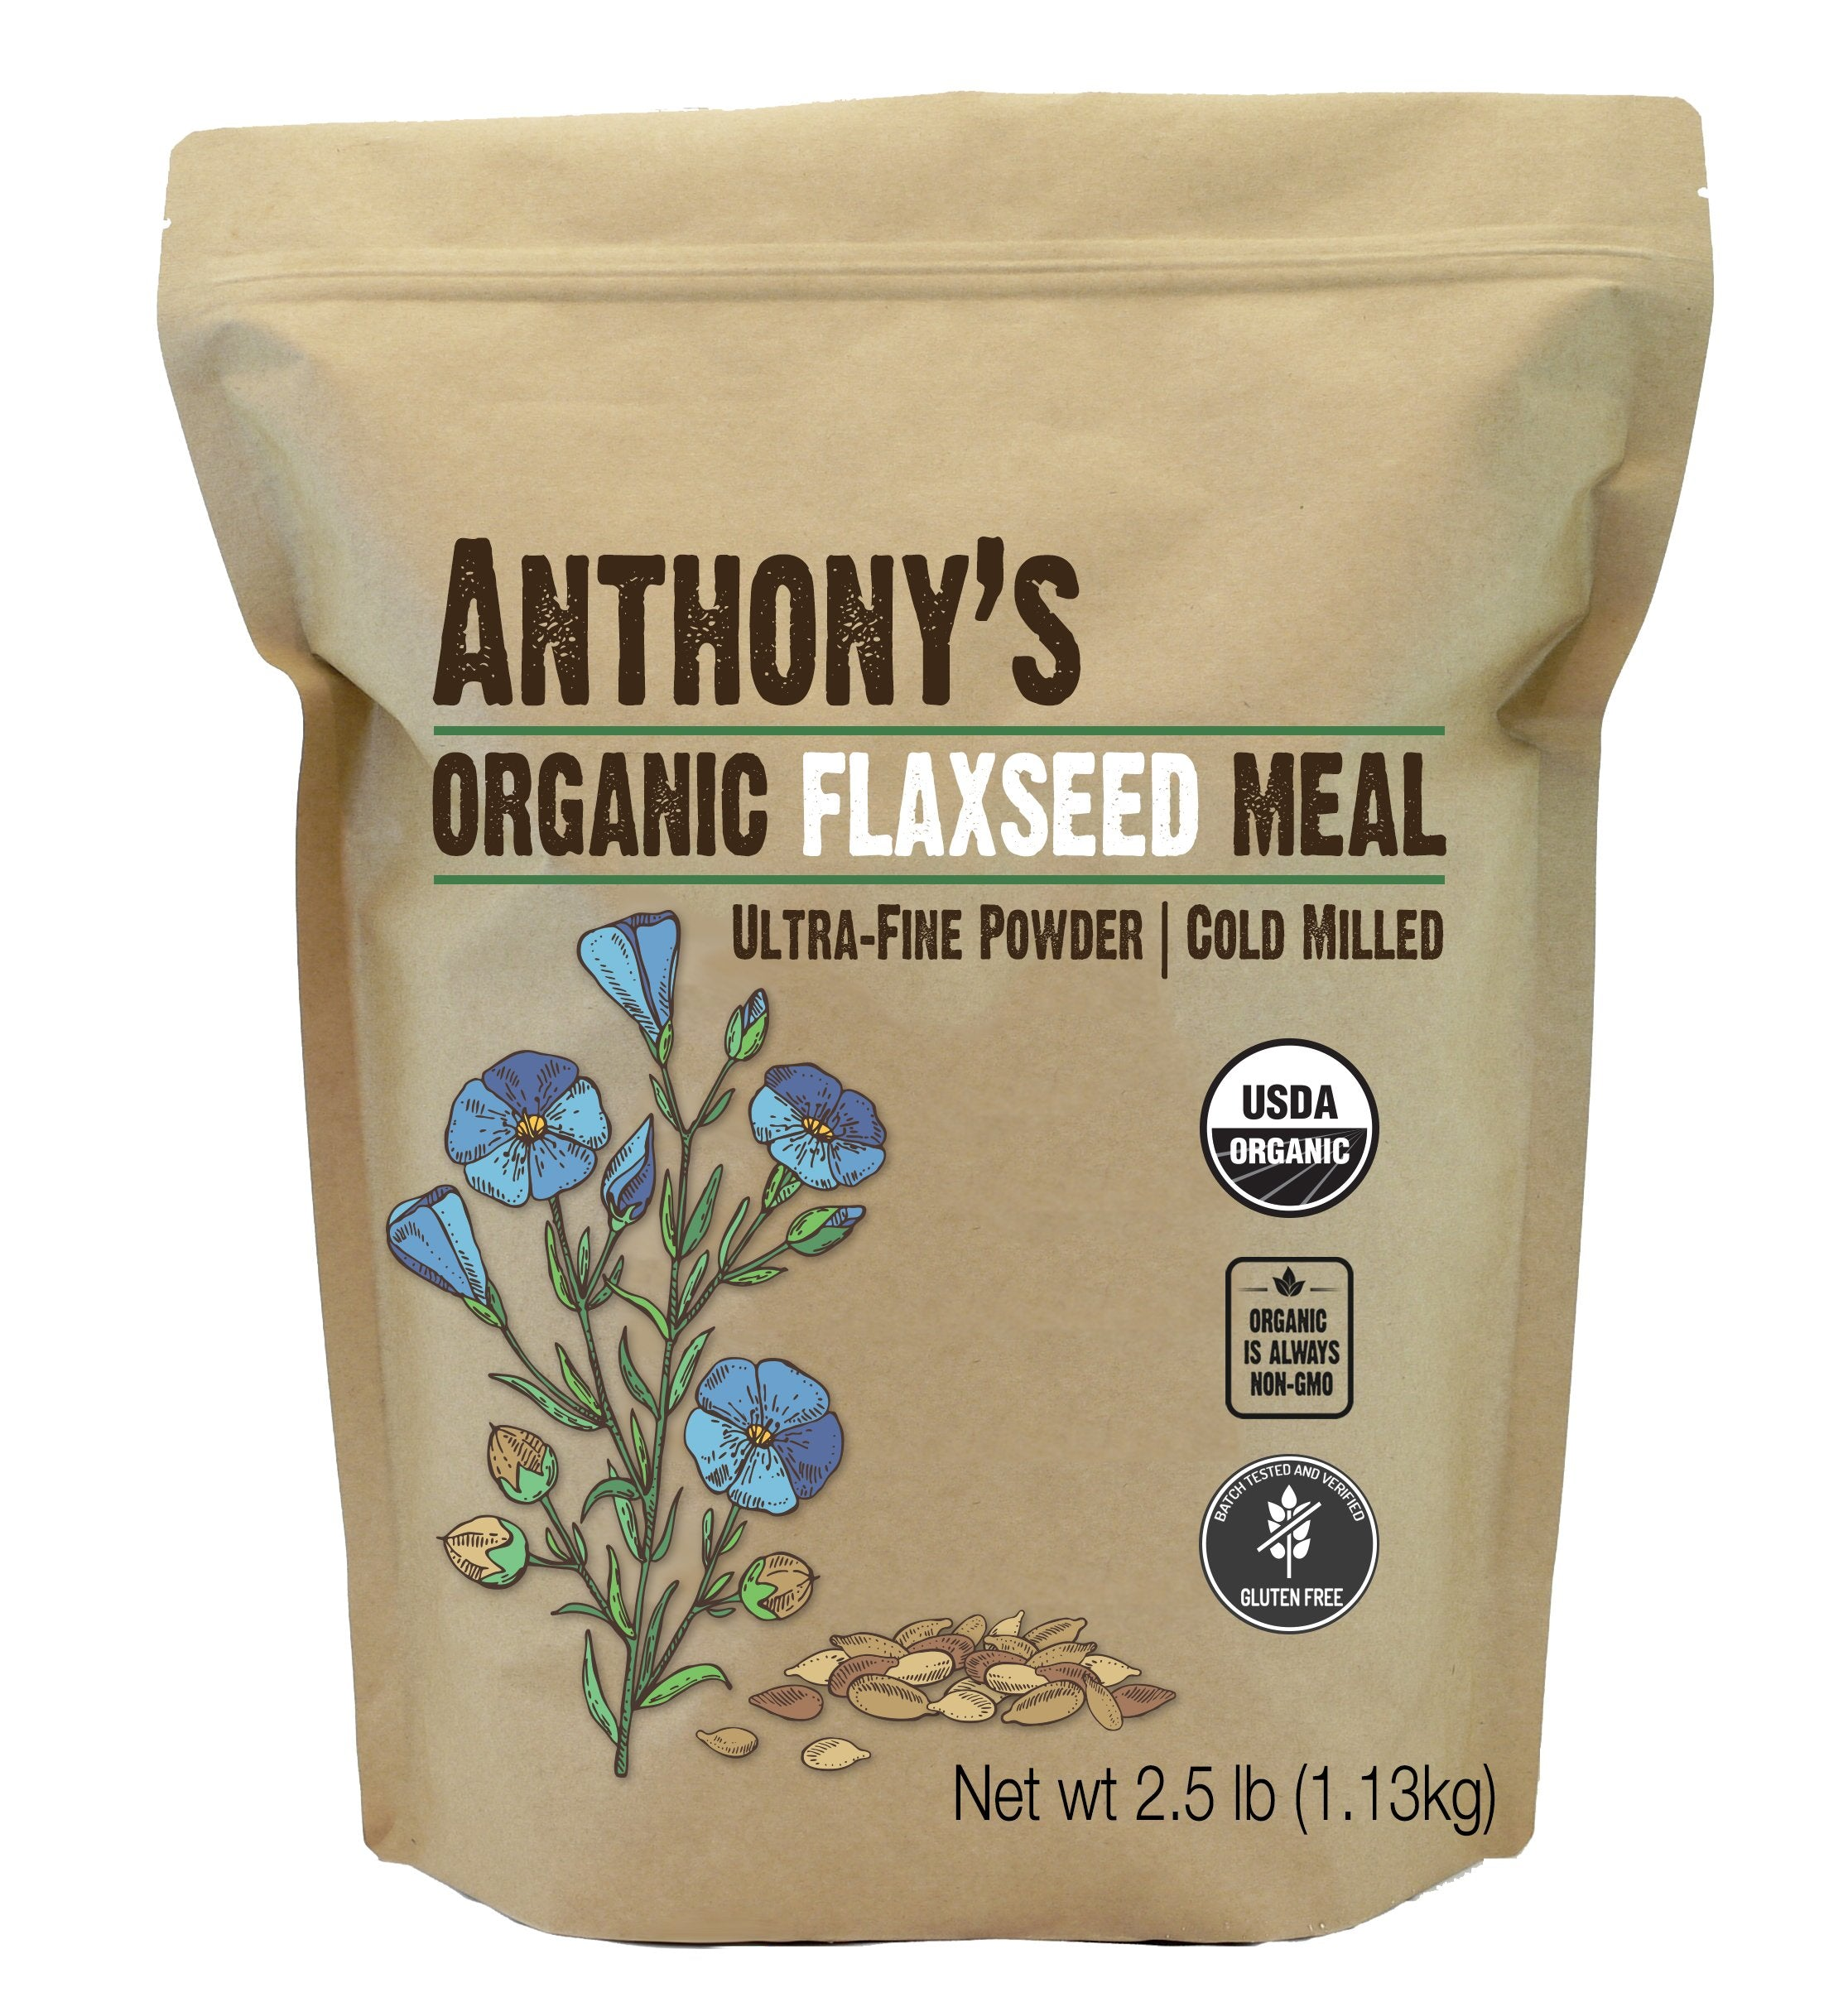 Flaxseed Meal: USDA Organic, Gluten Free, Ground Ultra-Fine